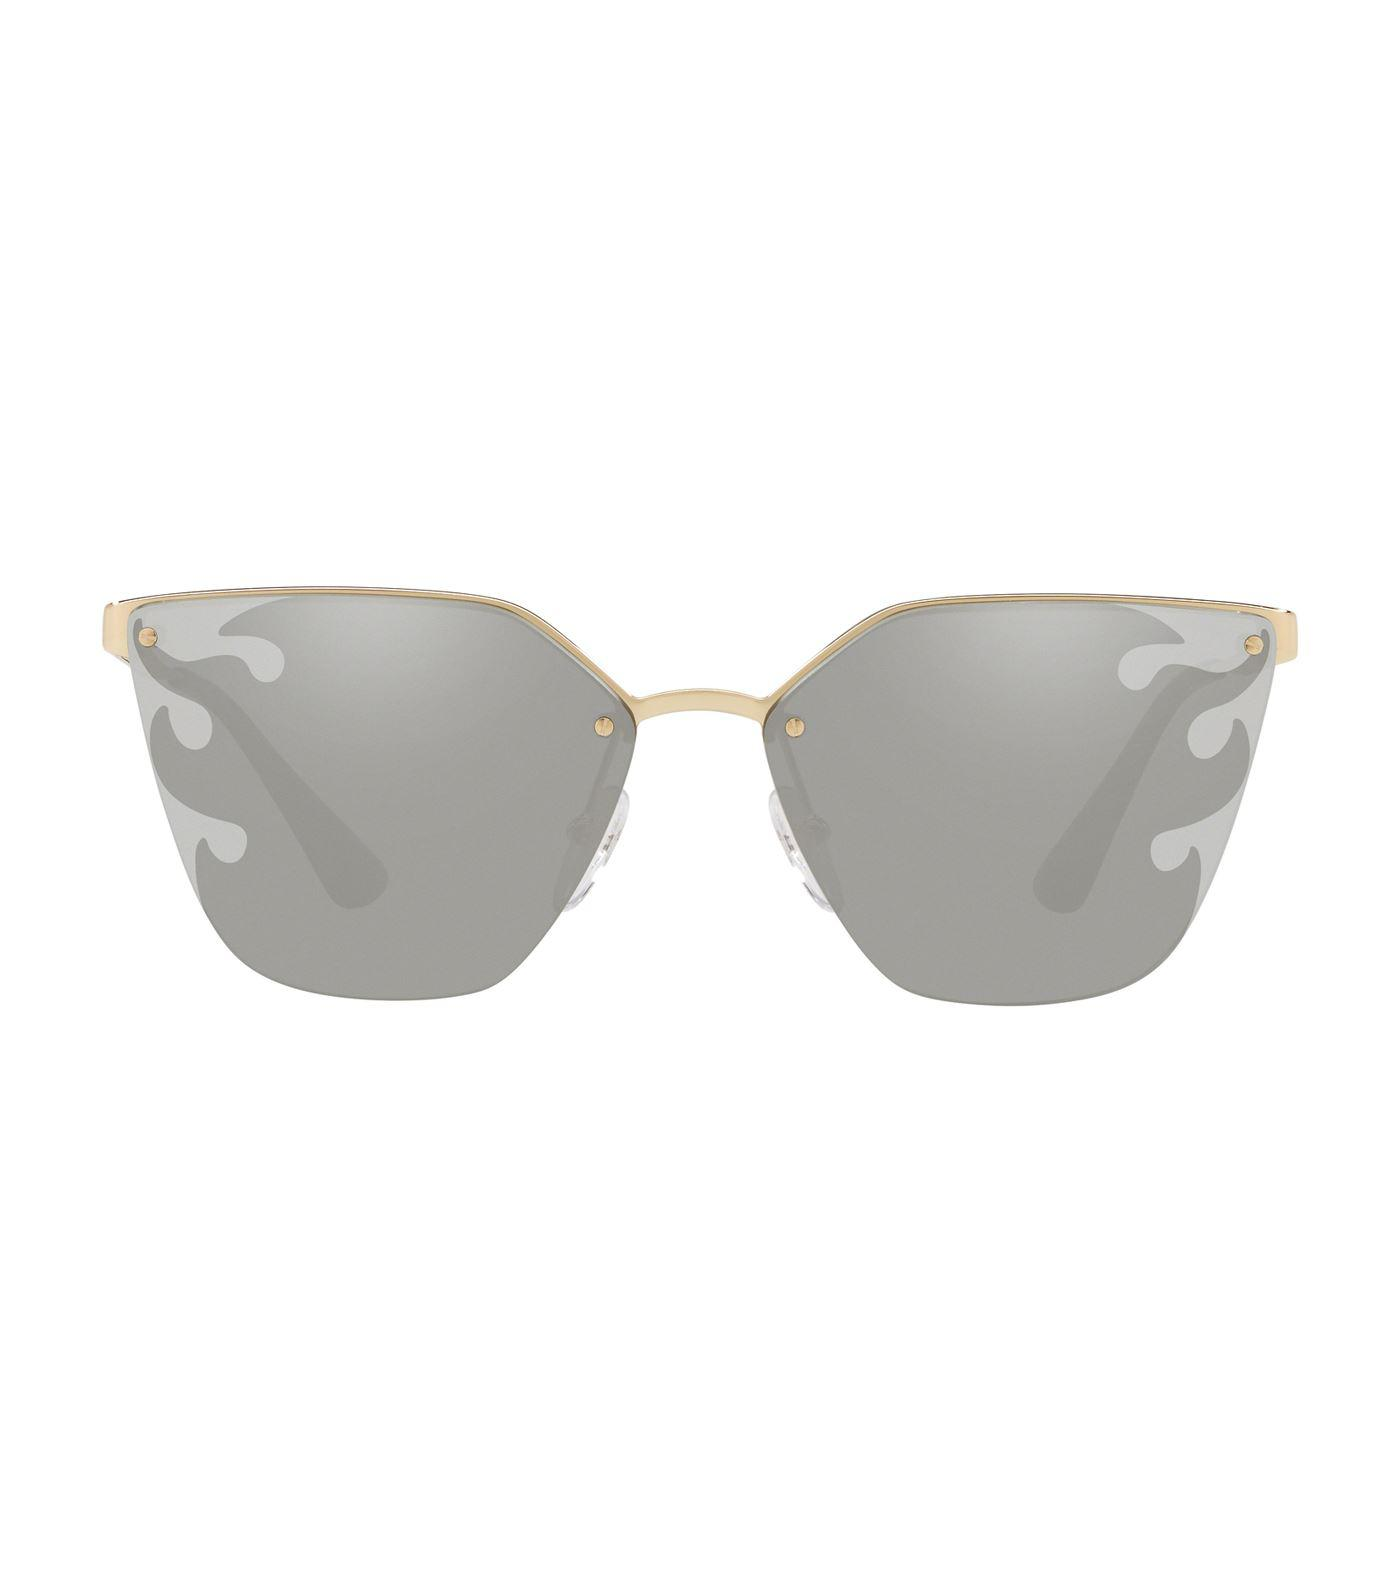 81849eb945b Prada Flame Cat Eye Sunglasses in Metallic - Lyst